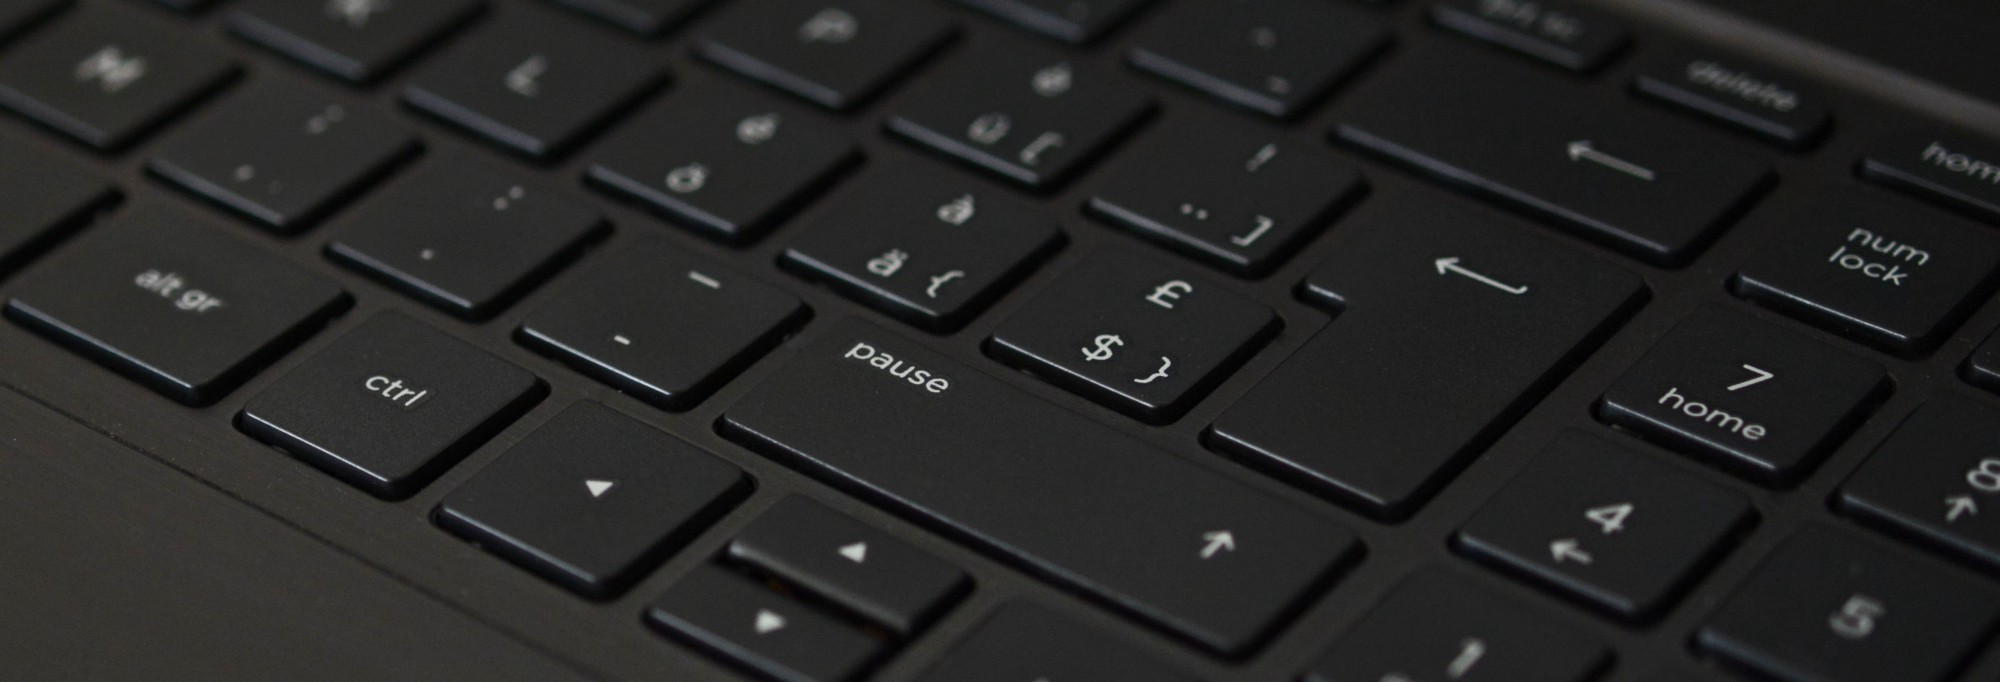 A close up, angled shot of a black computer keyboard